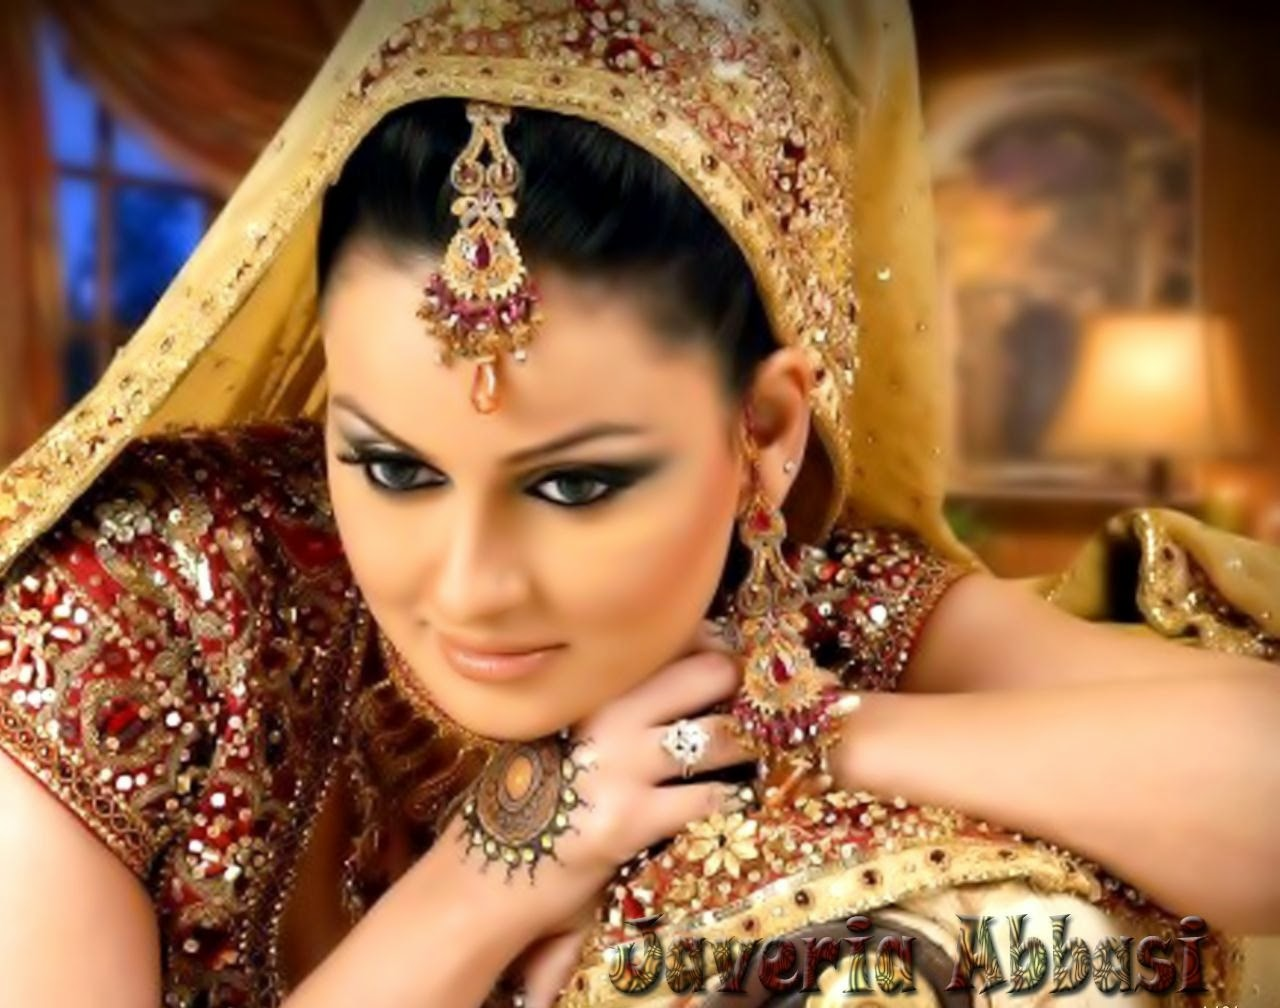 Javeria Abbasi HD Wallpapers Free Download